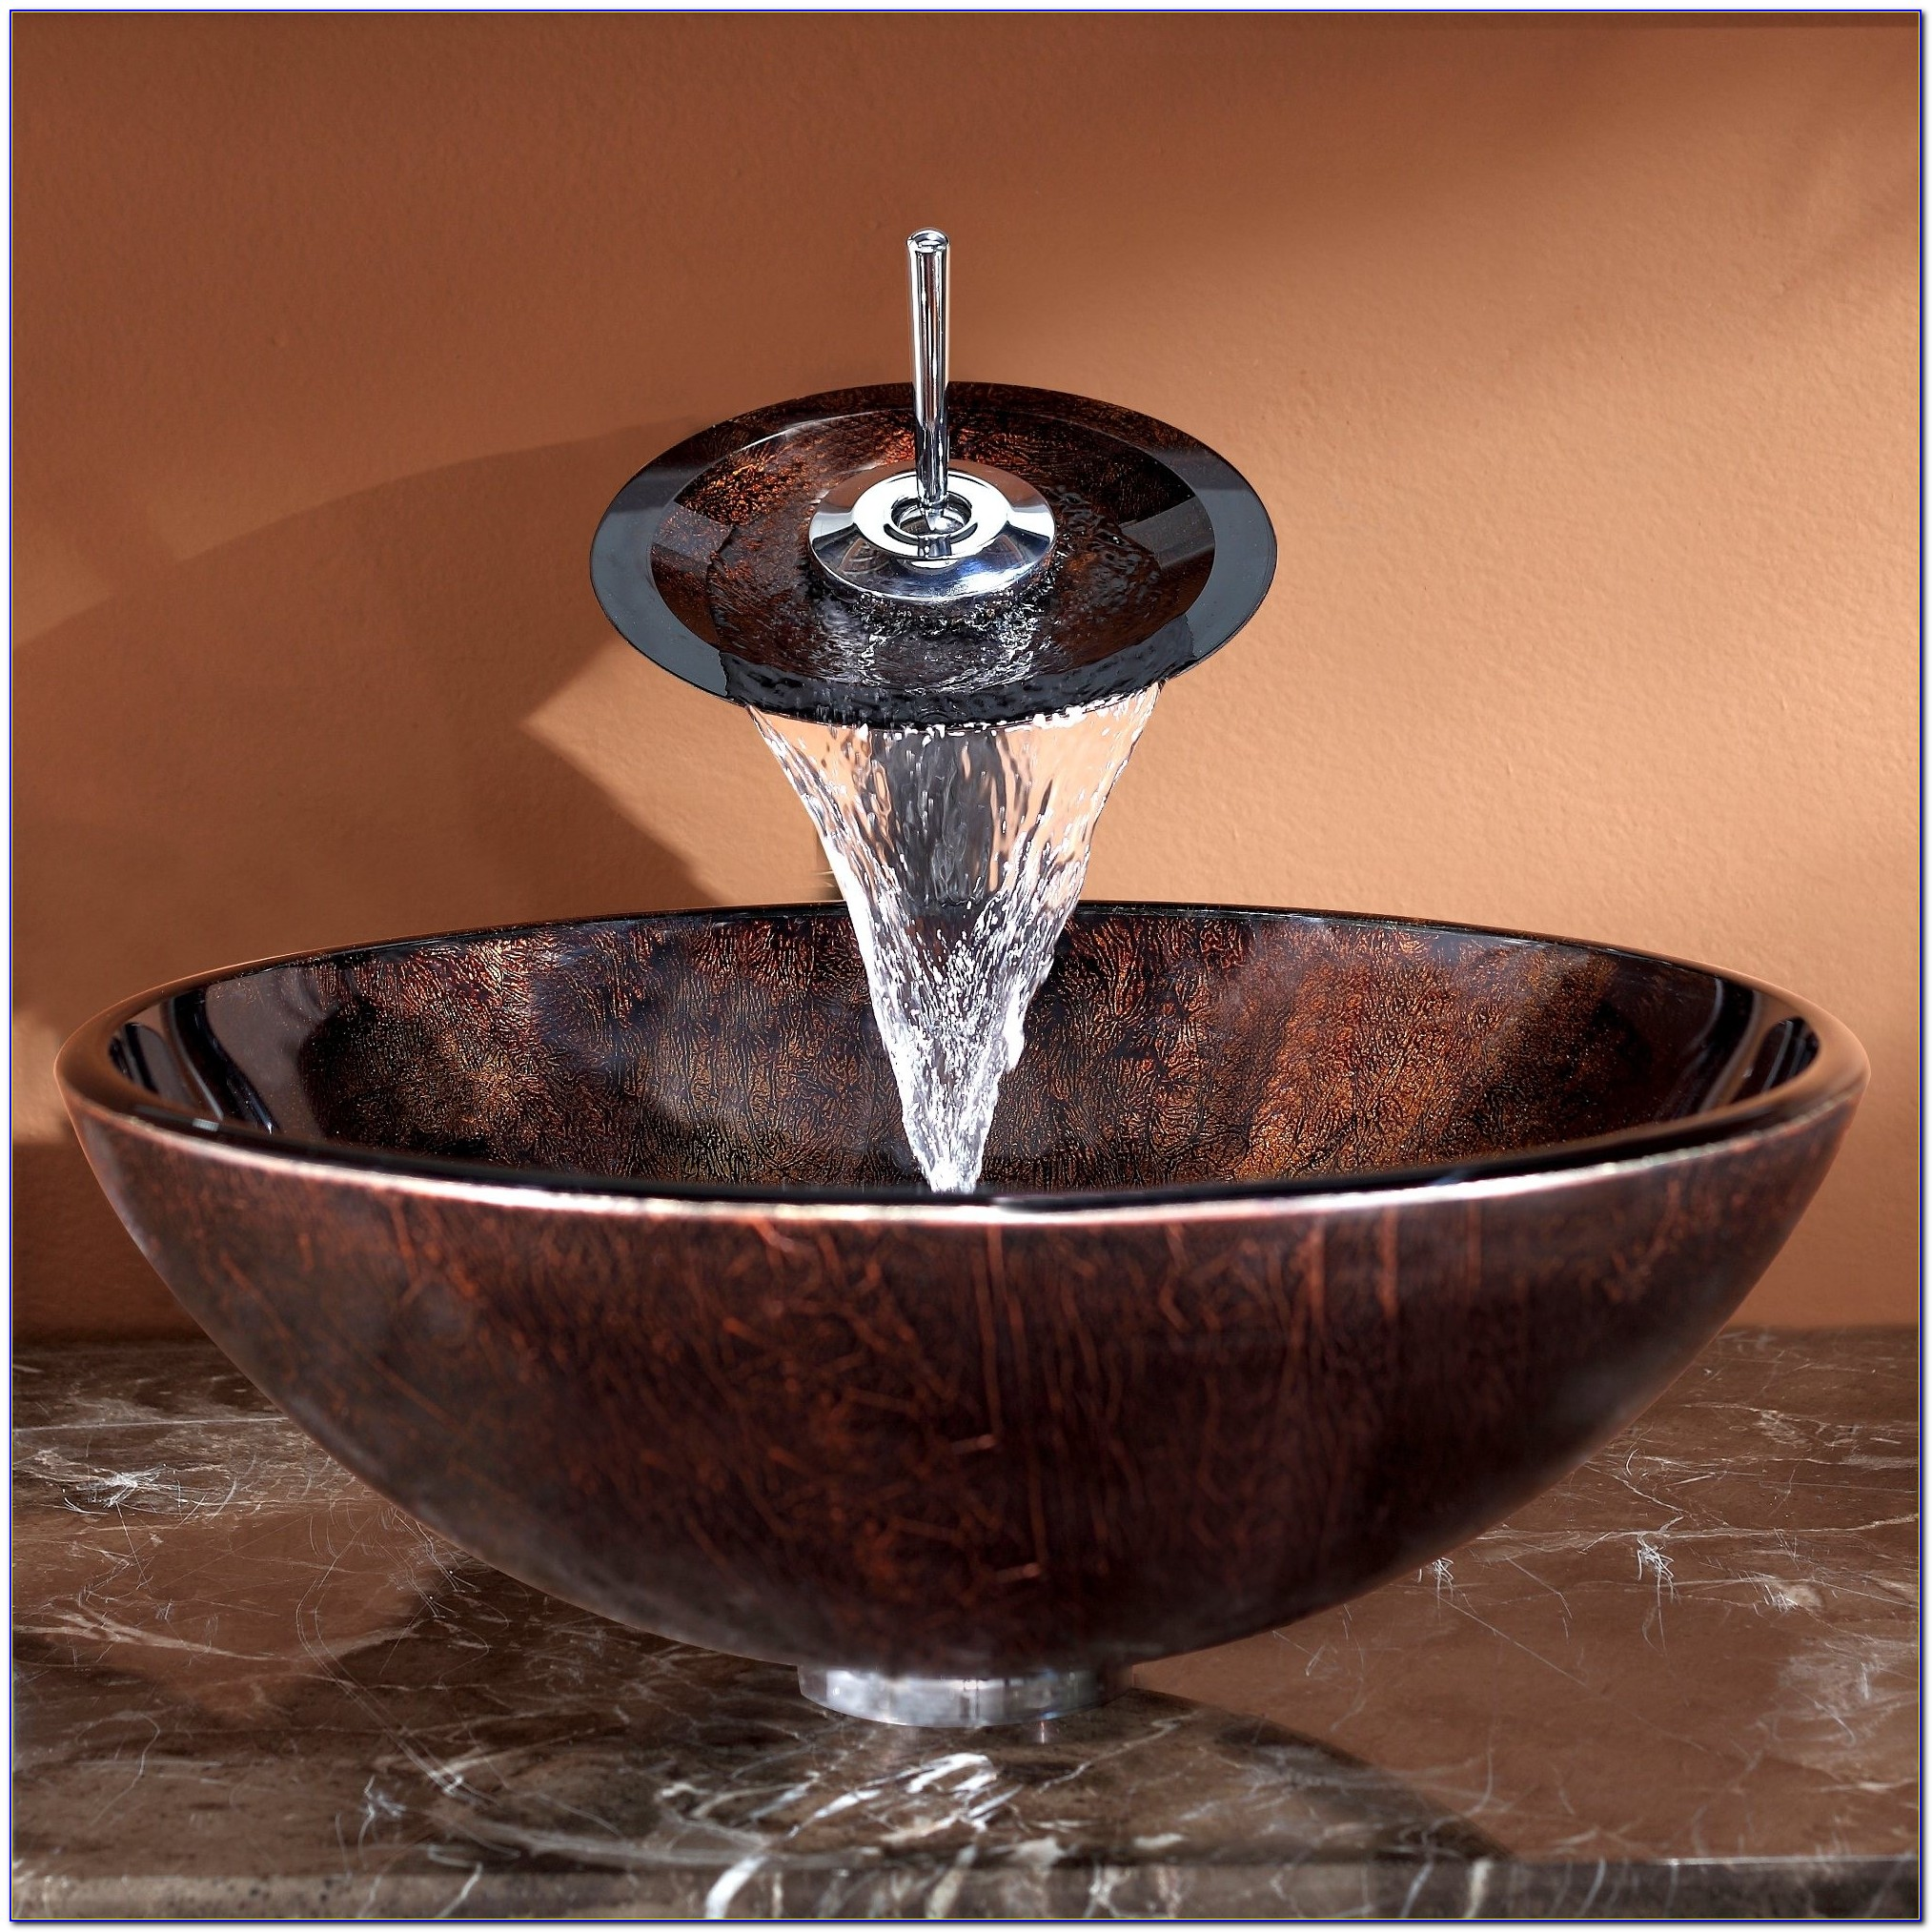 Kraus Vessel Sink And Waterfall Faucet Combo Kraus Vessel Sink And Waterfall Faucet Combo Bathroom Glass Vessel Sink And Faucet Combination Kraususa 2000 X 2000